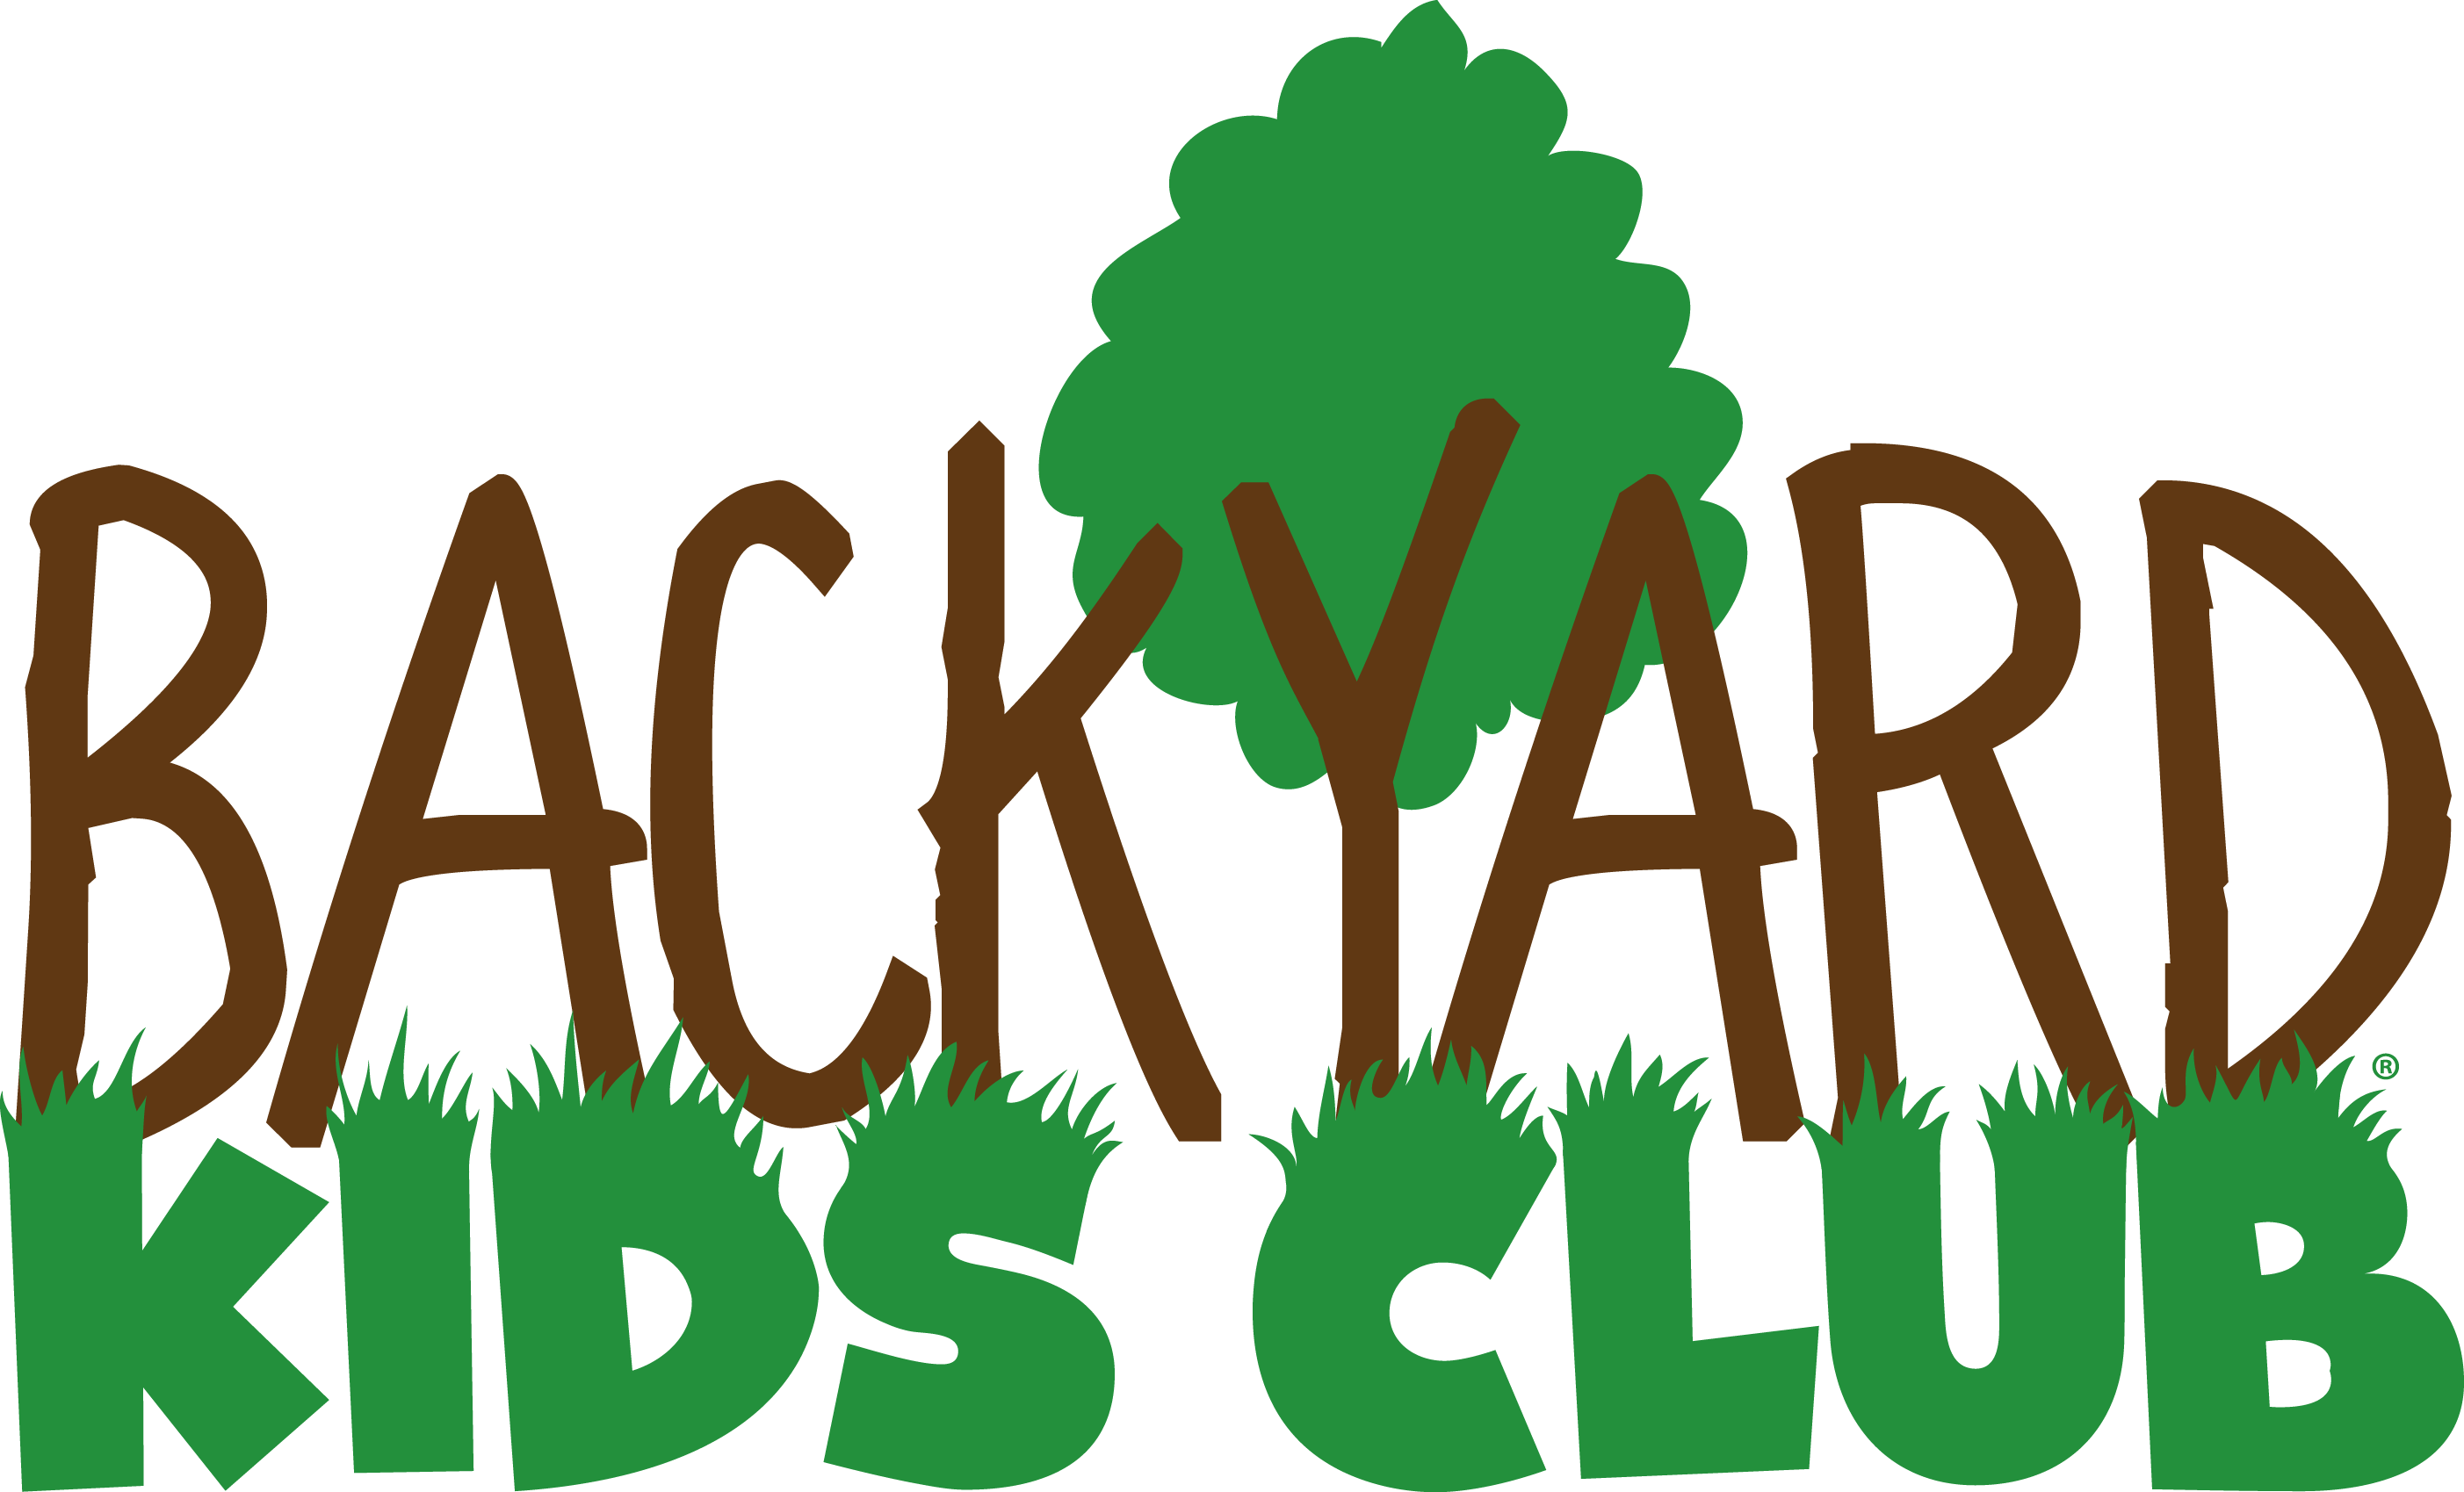 Free Backyard Cliparts, Download Free Clip Art, Free Clip.